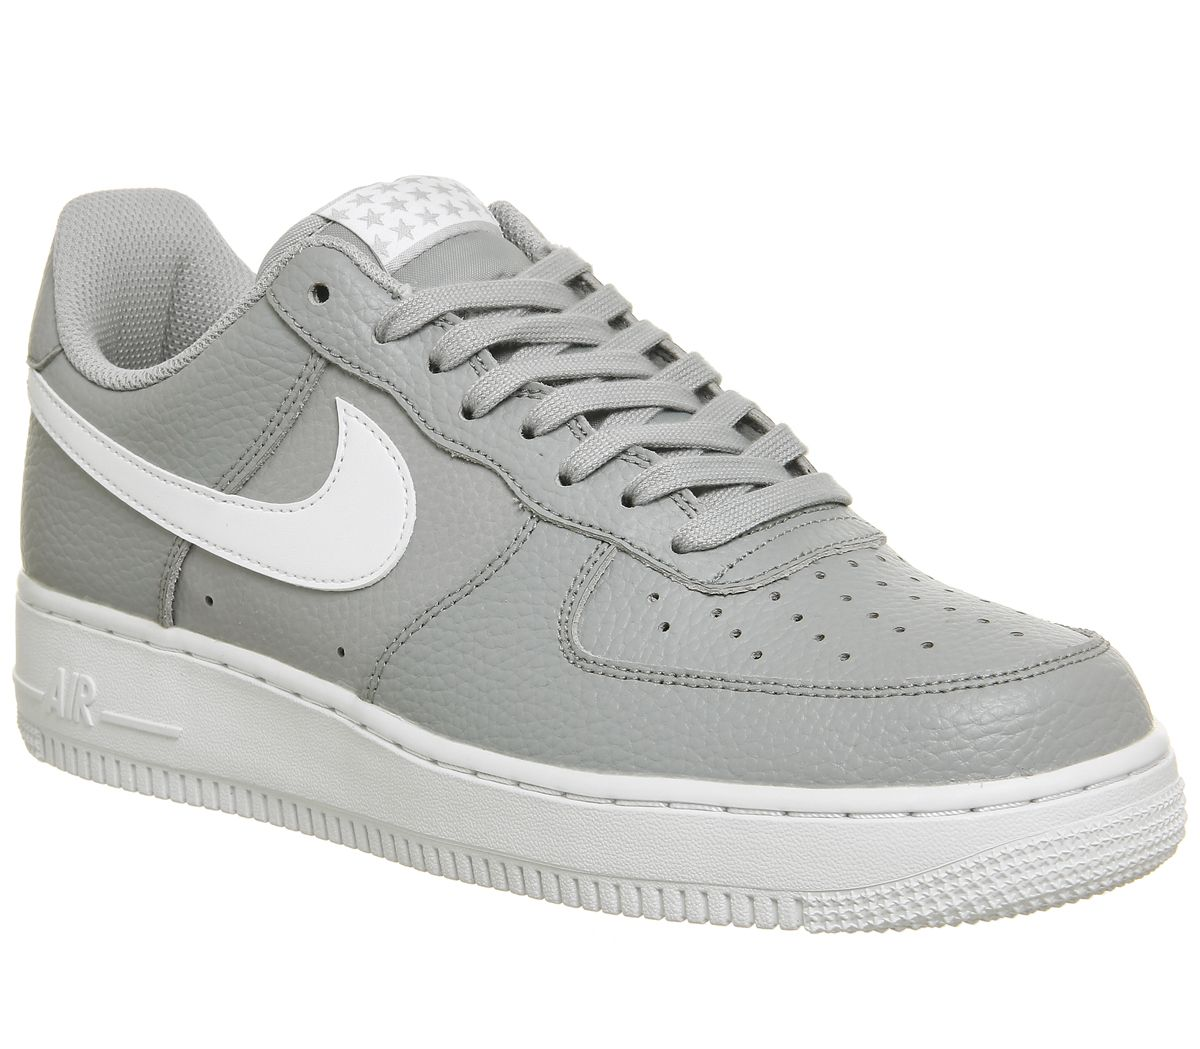 cheaper 673d7 dc3f2 Nike Air Force 1 07 Trainers Wolf Grey White White - His trainers